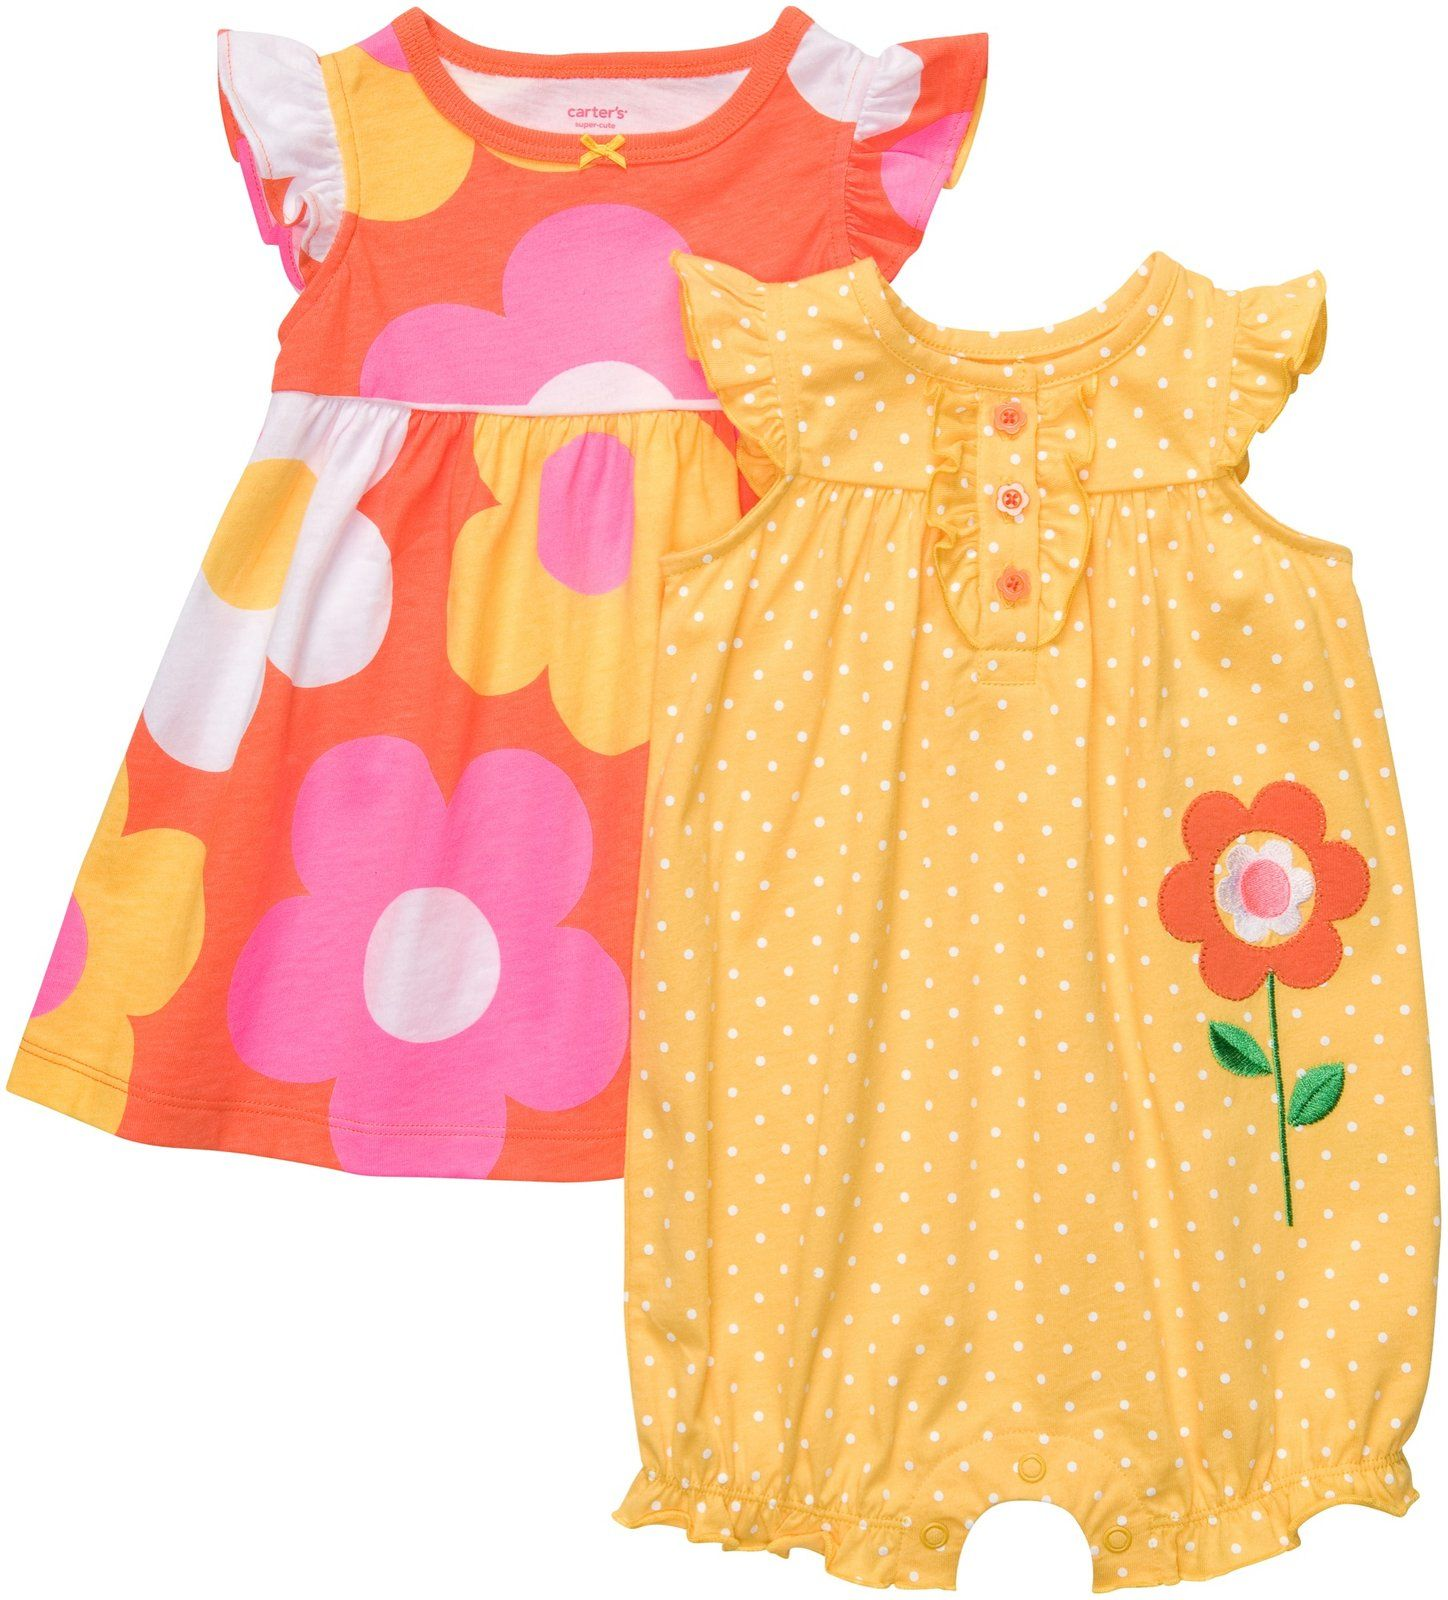 Yellow dress kids  carters  Carterus Babies and Kids  Pinterest  Babies Baby emily